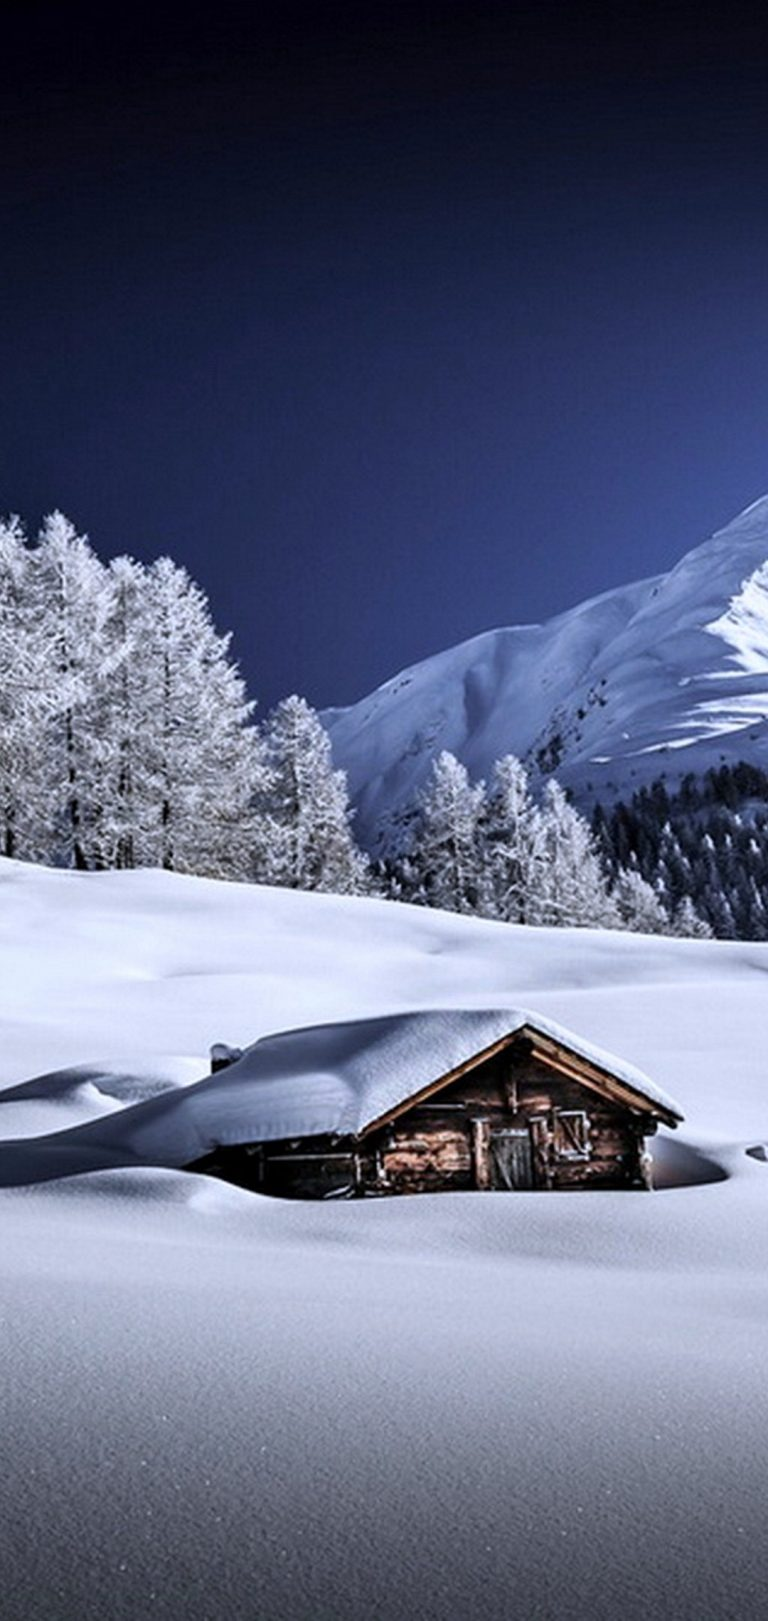 Frozen Winter Wallpaper 1080x2280 768x1621